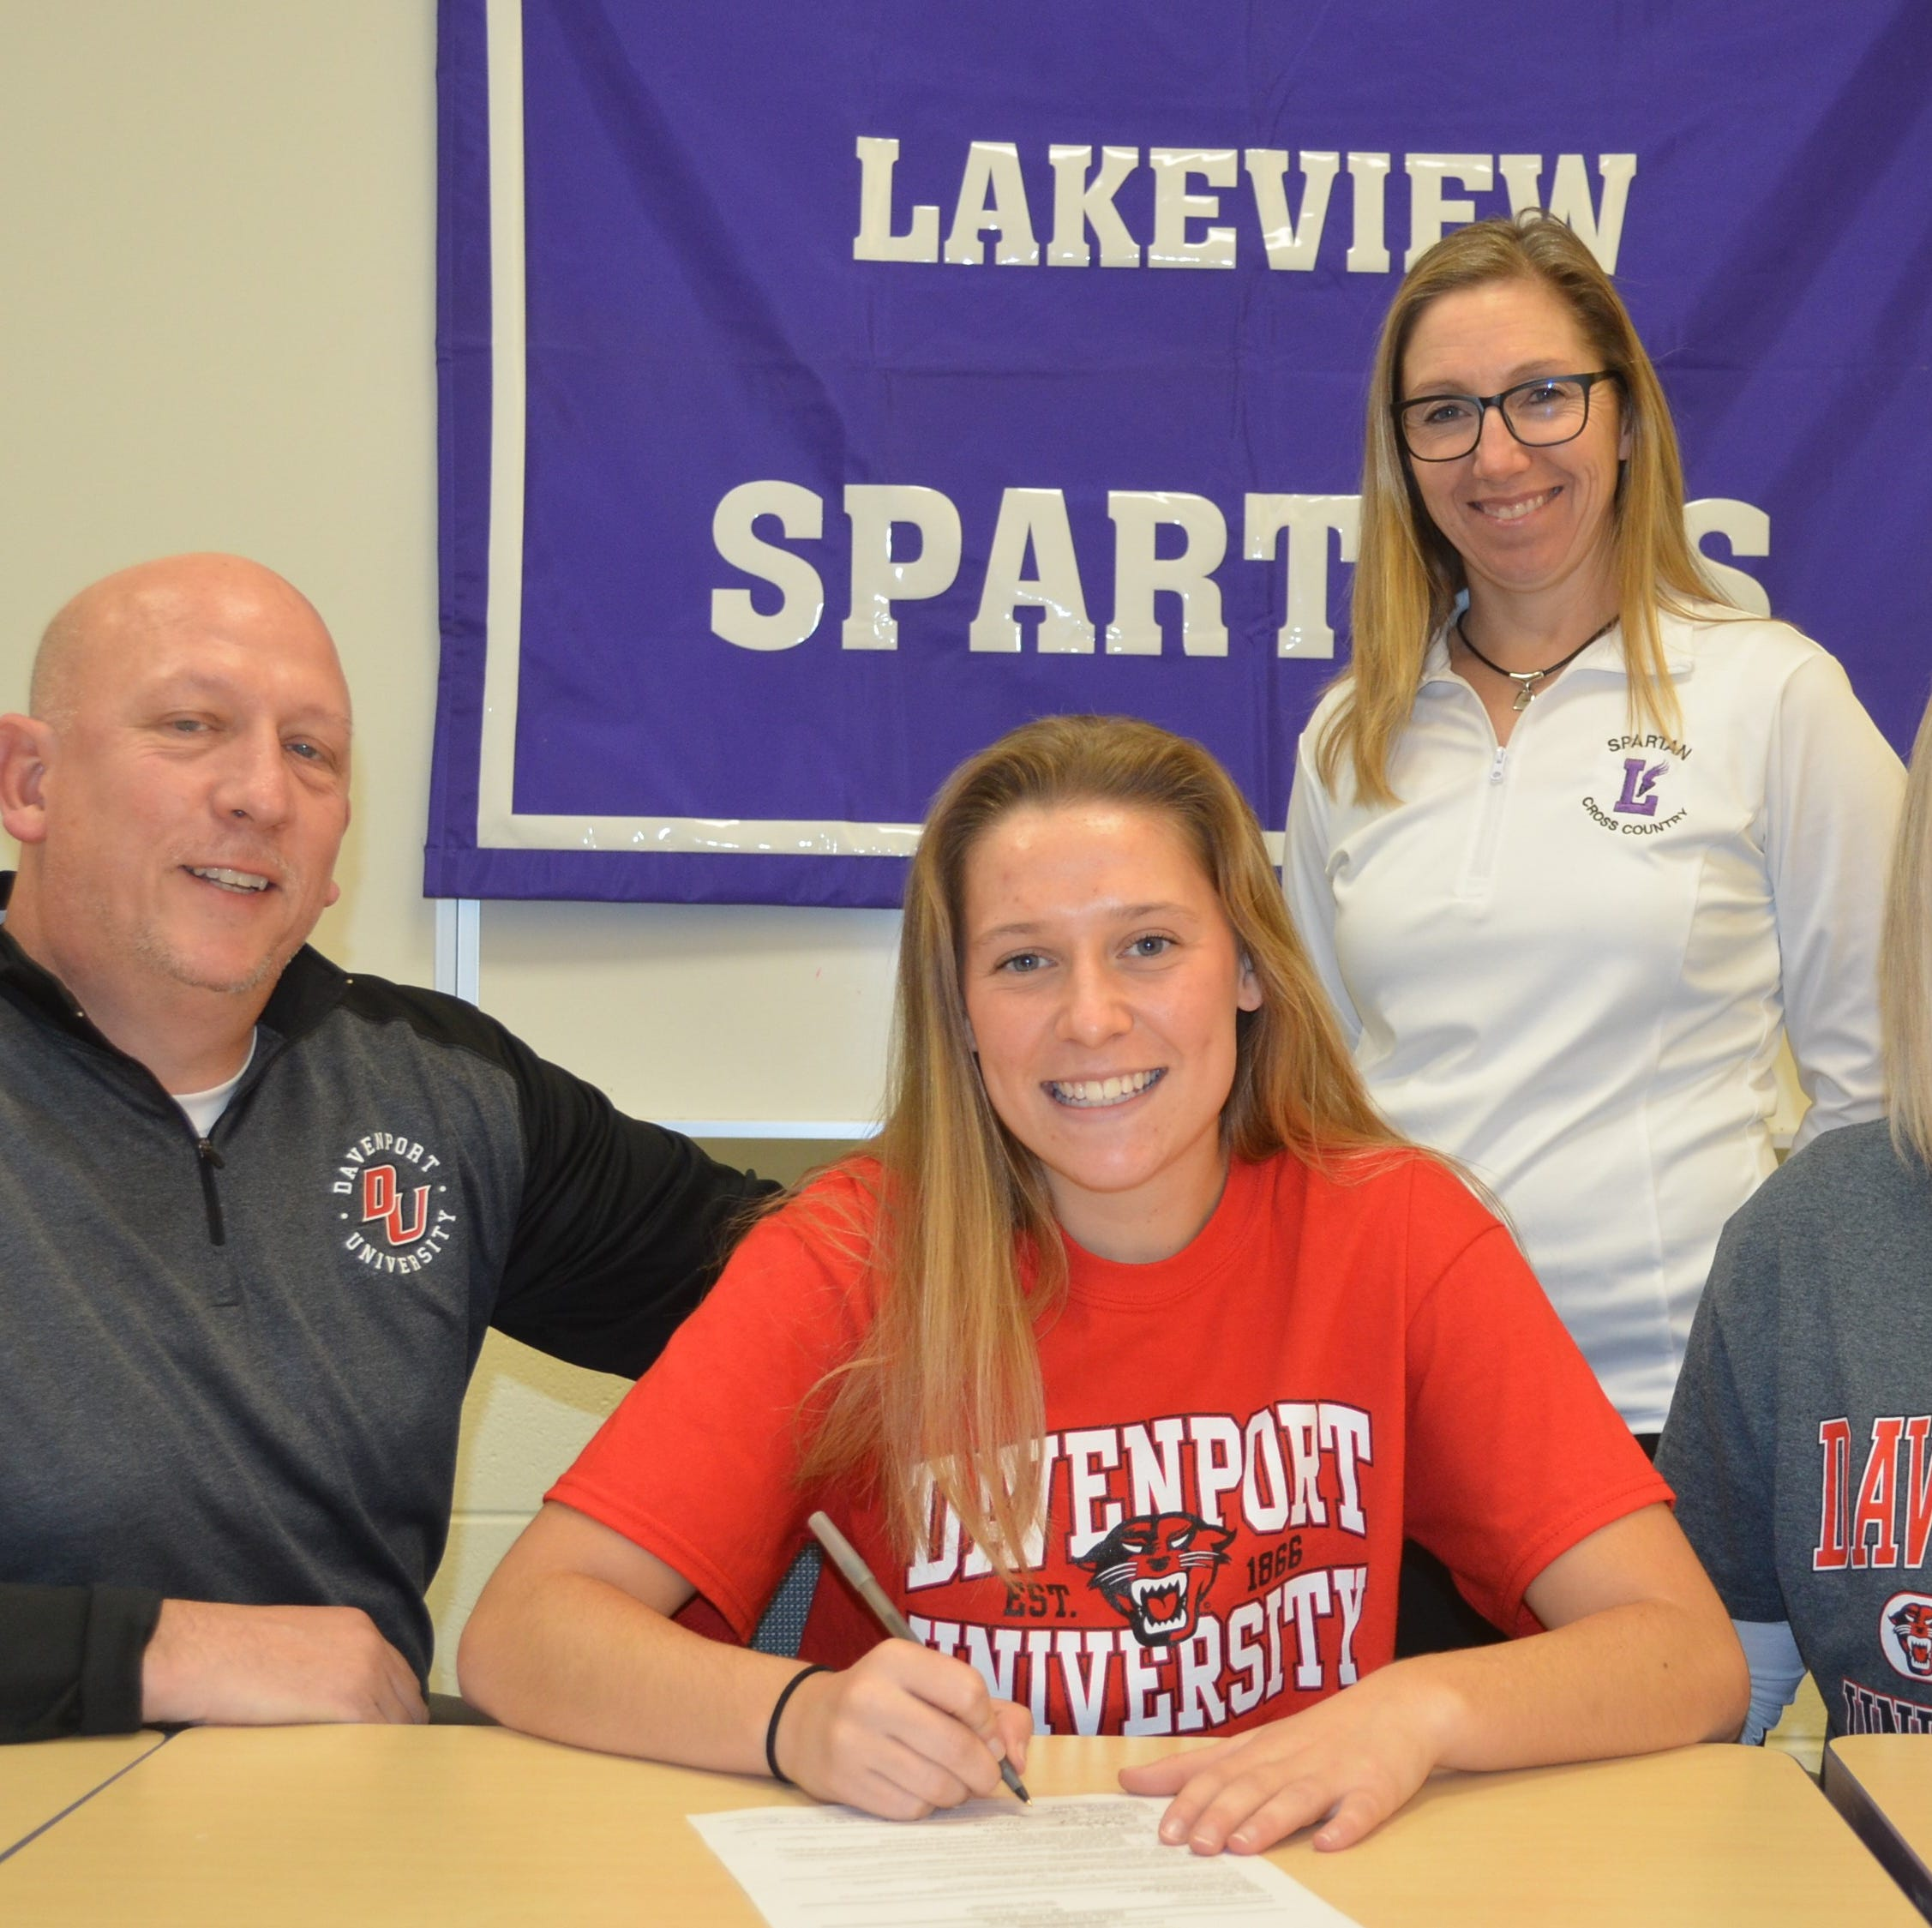 Lakeview's Evans signs to run track at Davenport University